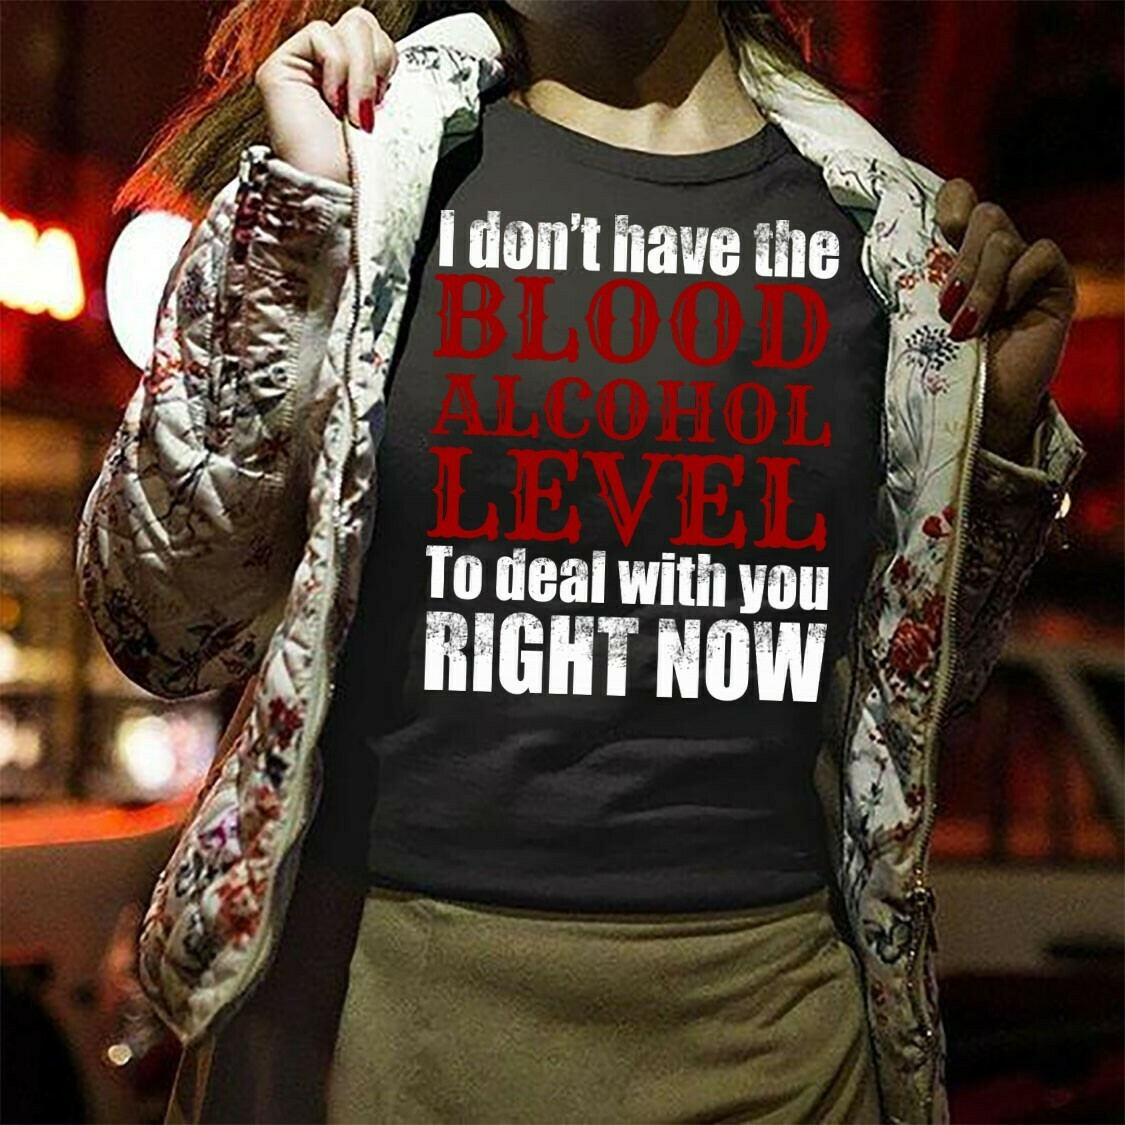 I Don't Have The Blood Alcohol Level To Deal With You Right Now  T-Shirt Hoodie Sweatshirt Sweater Tee Kids Youth Gifts Jolly Family Gifts